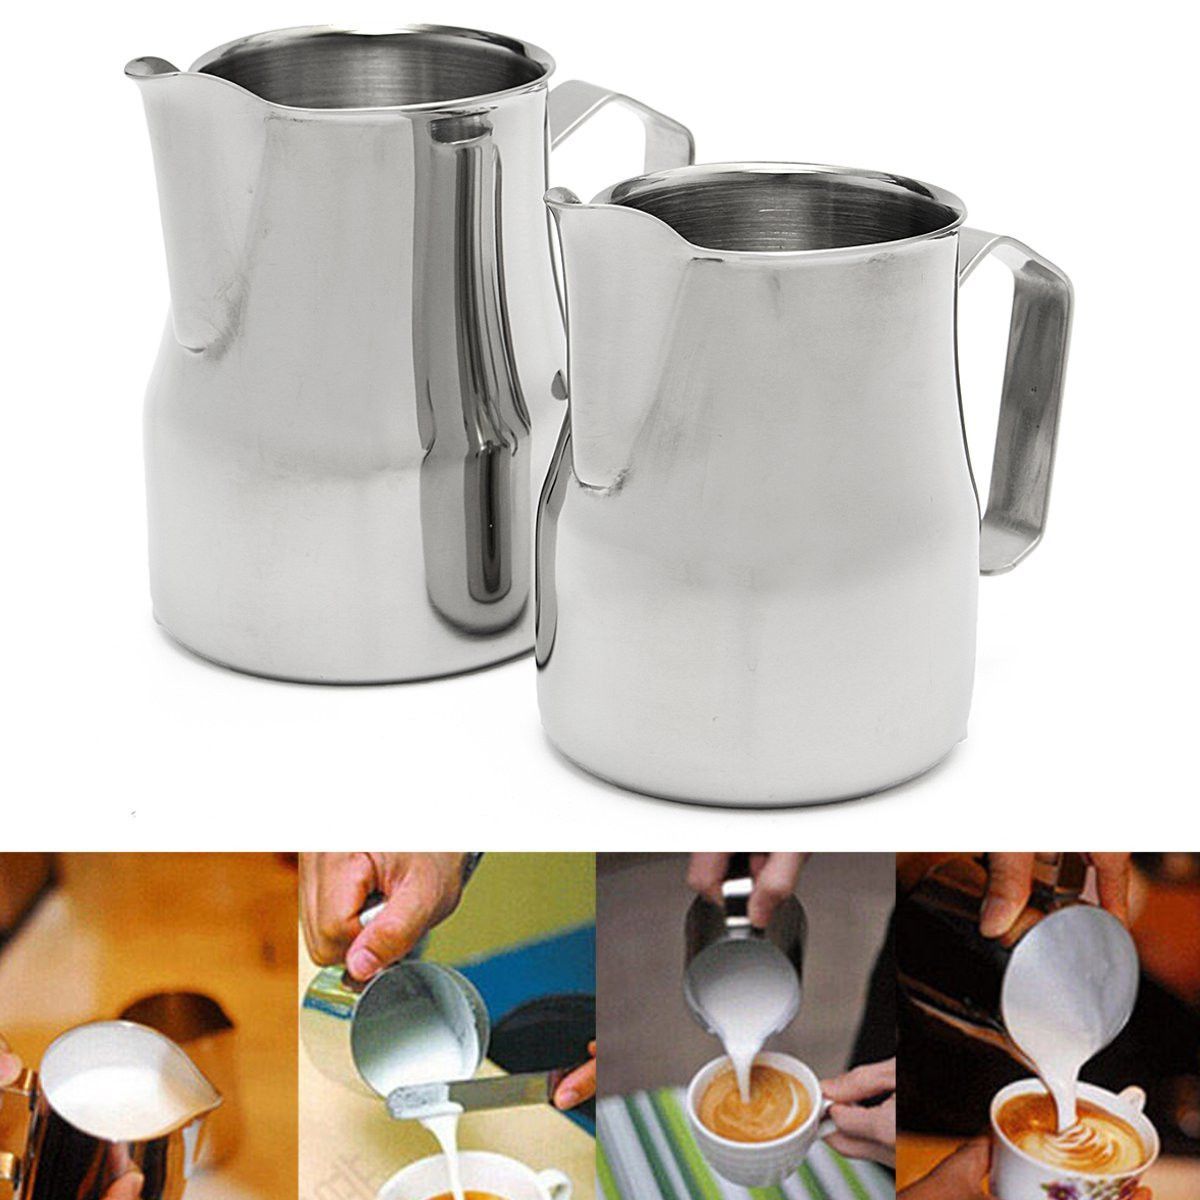 High Qaulity Stainless Steel Milk Frothing Jug Espresso Coffee Pitcher Barista Craft Coffee Latte Milk Frothing Jug 350ml 600ml